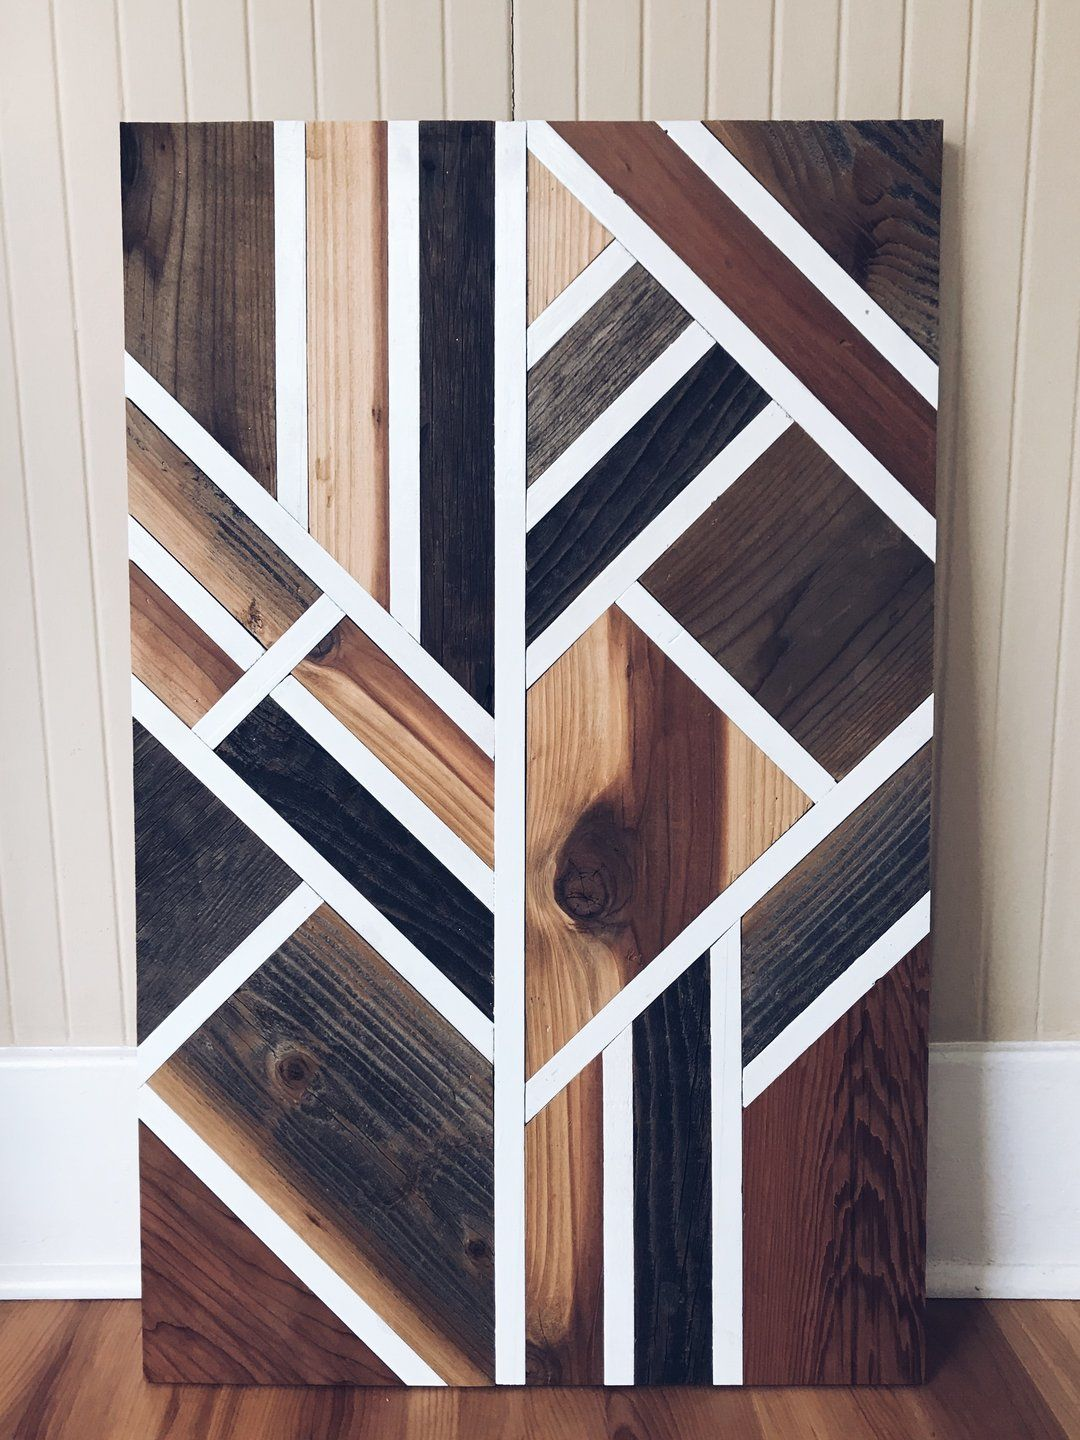 Reclaimed Wood Wall Art The Eyre With Images Reclaimed Wood Wall Art Diy Wall Art Wood Wall Art